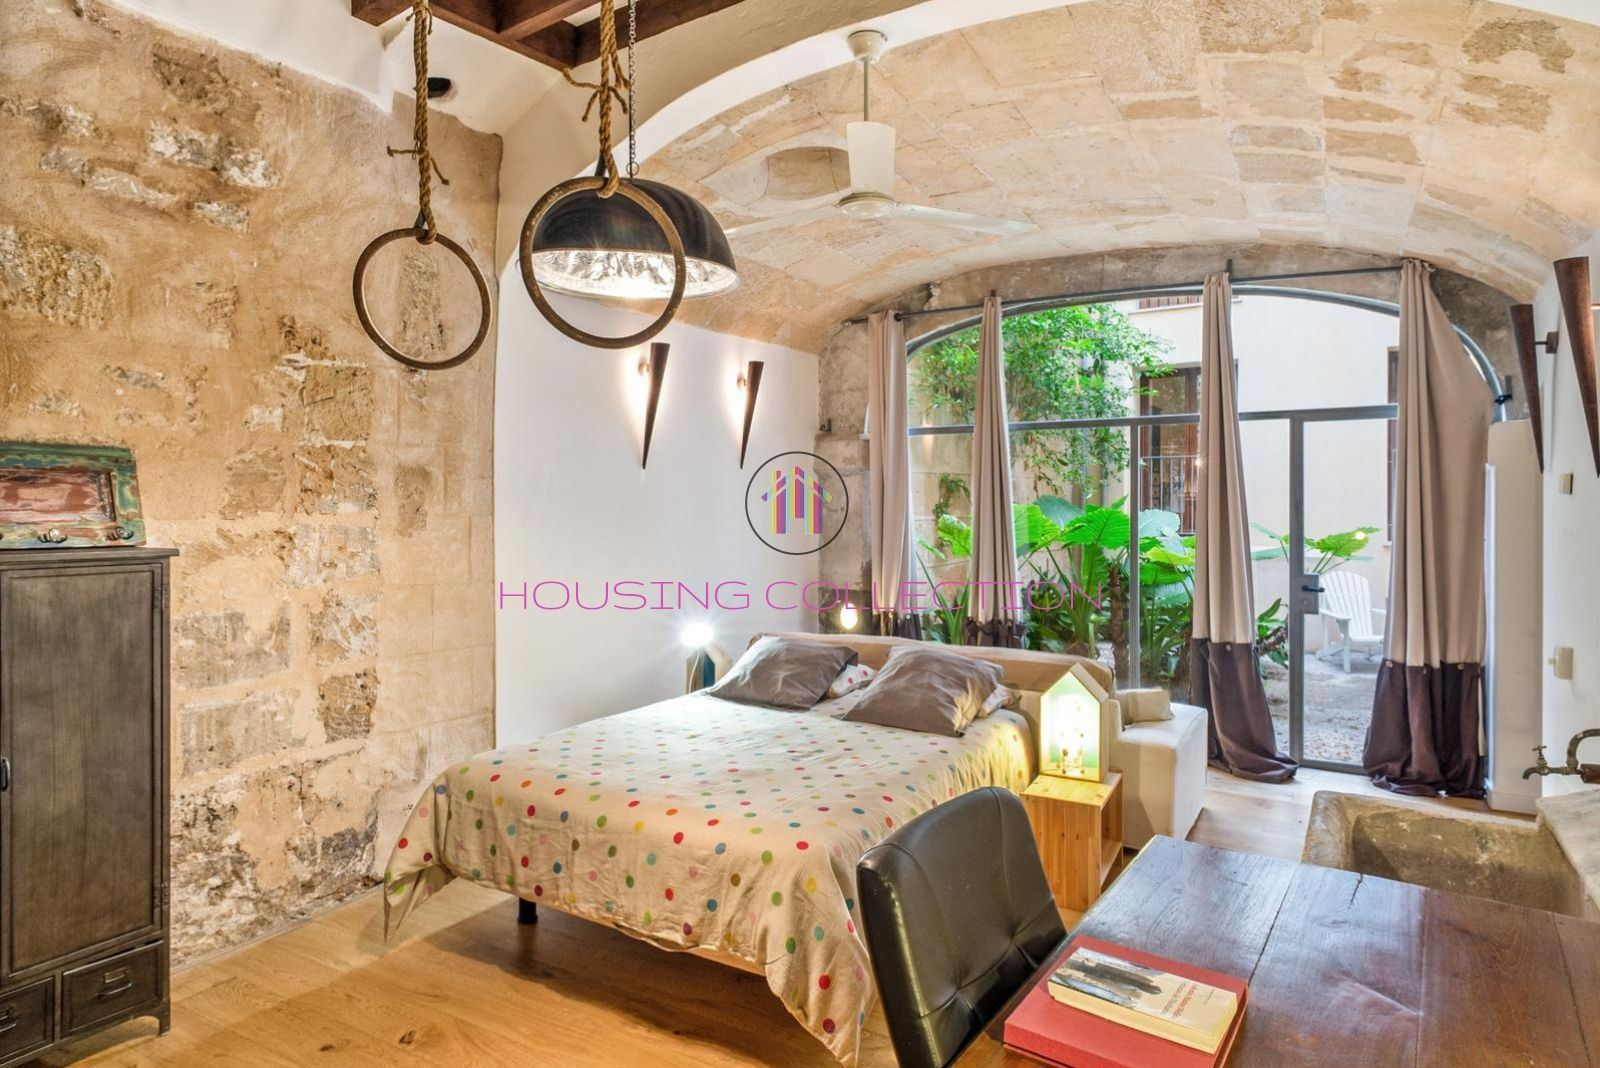 ESPECTACULAR VIVIENDA DÚPLEX CON PATIO EN CASCO ANTIGUO